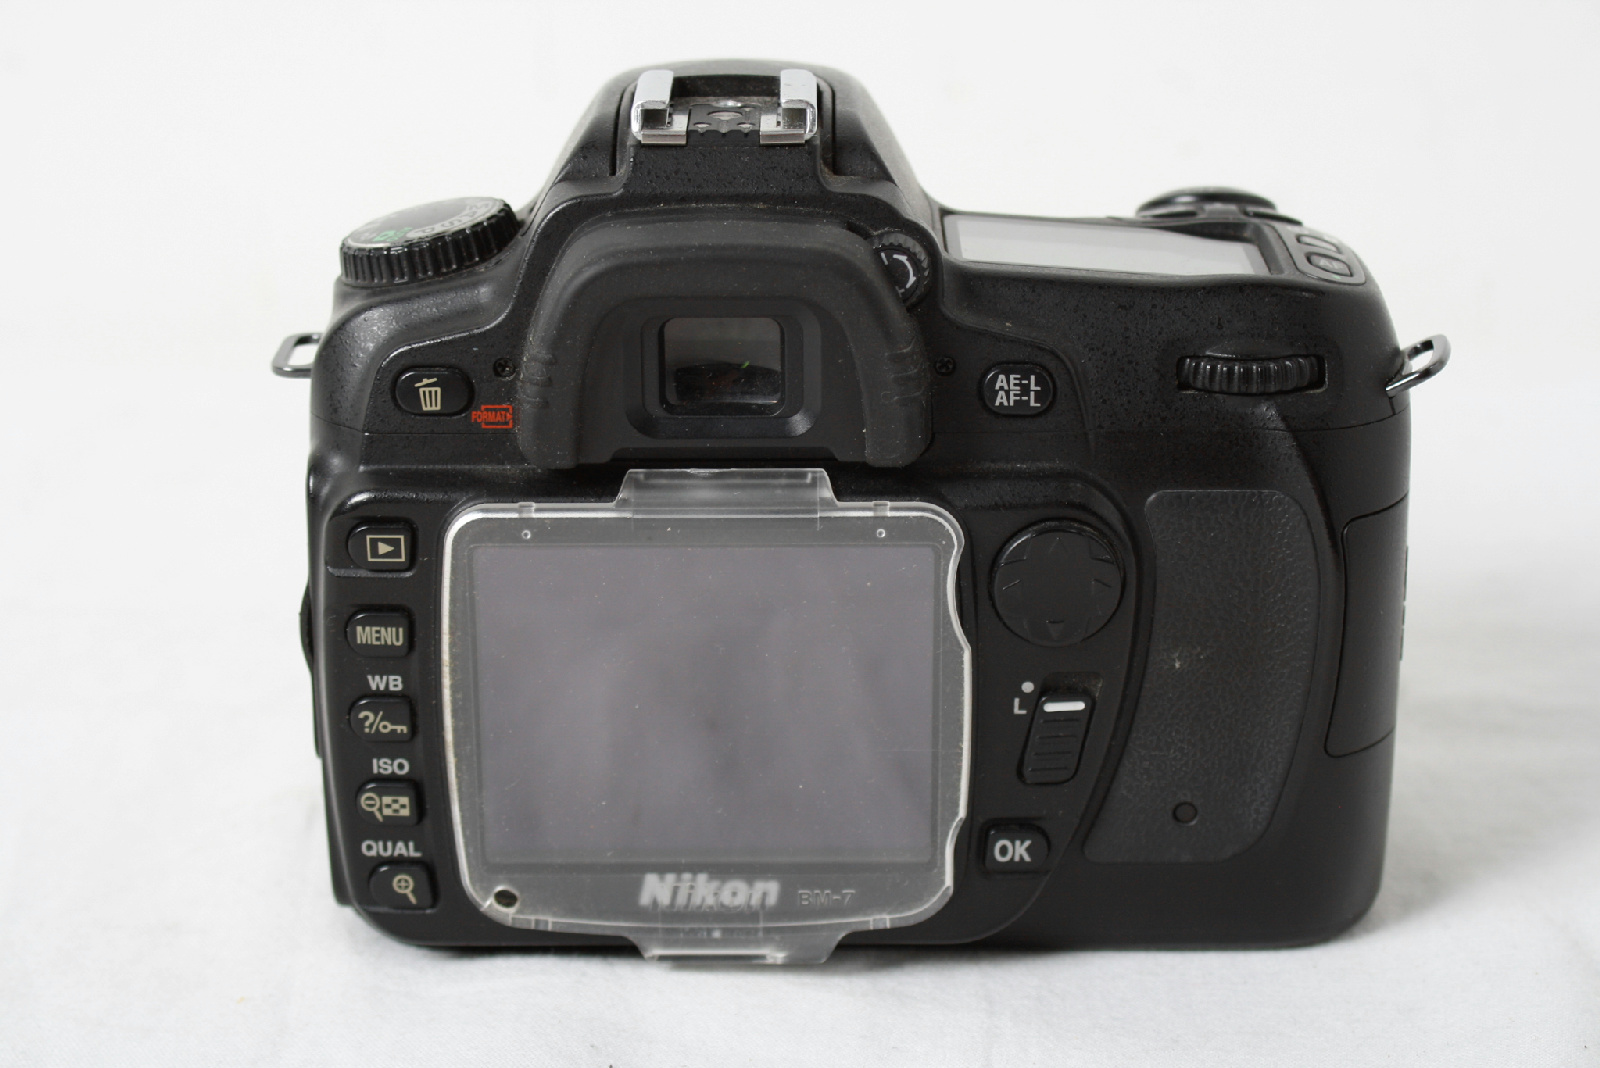 Nikon D80 10.2 MP SLR Digital Camera Body